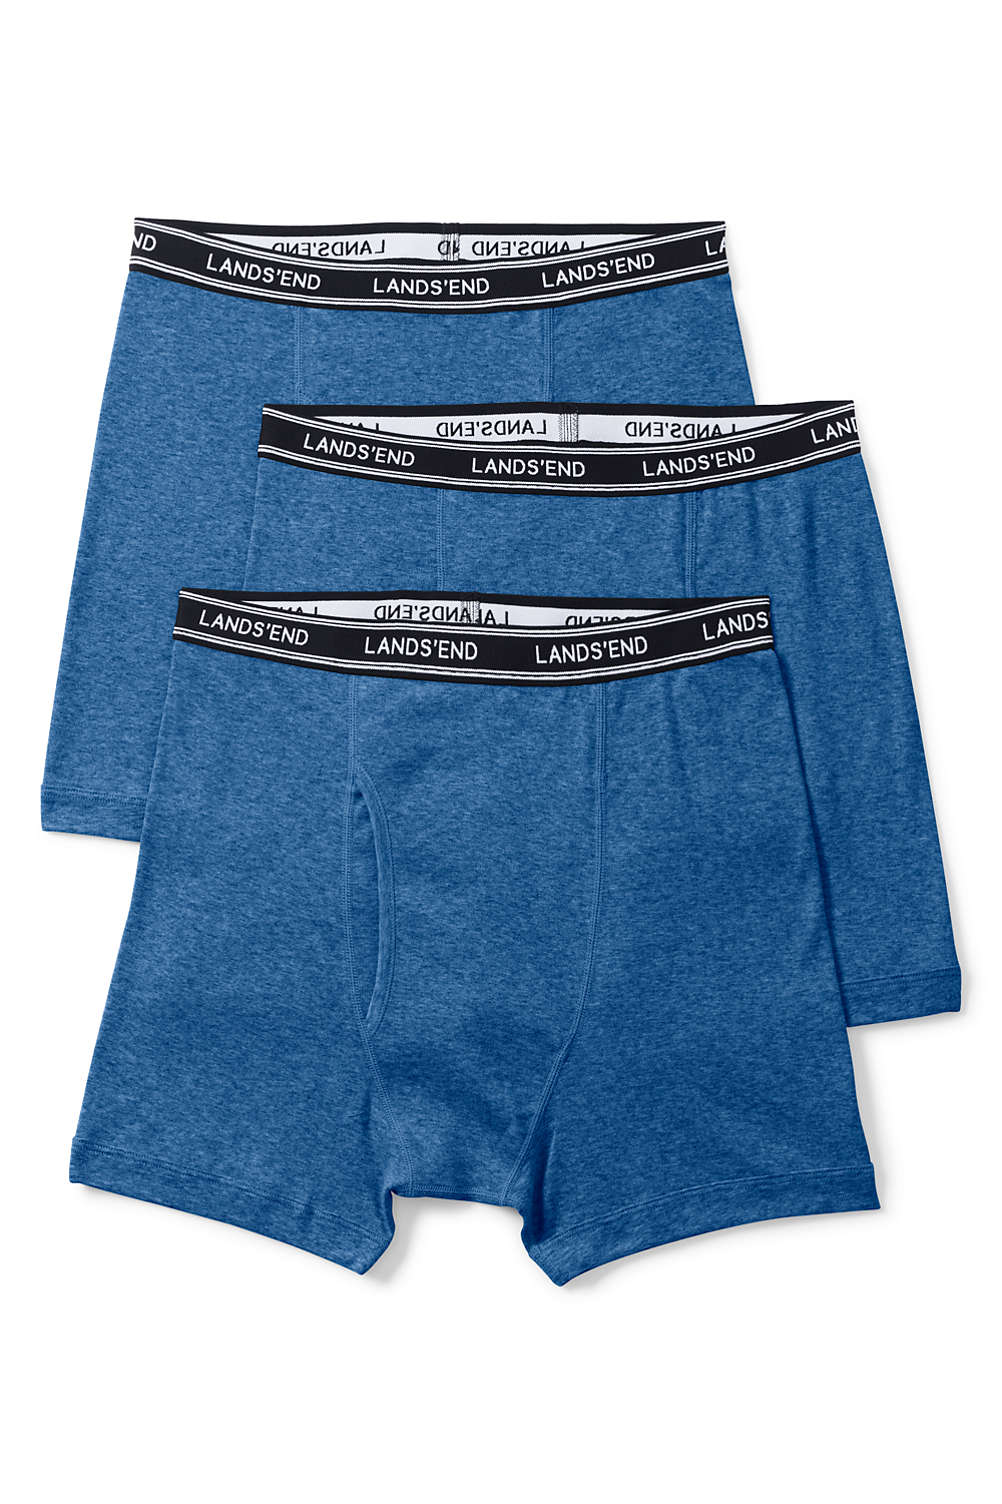 4a364352ad9 Men's Knit Boxer Brief (3-pack) from Lands' End